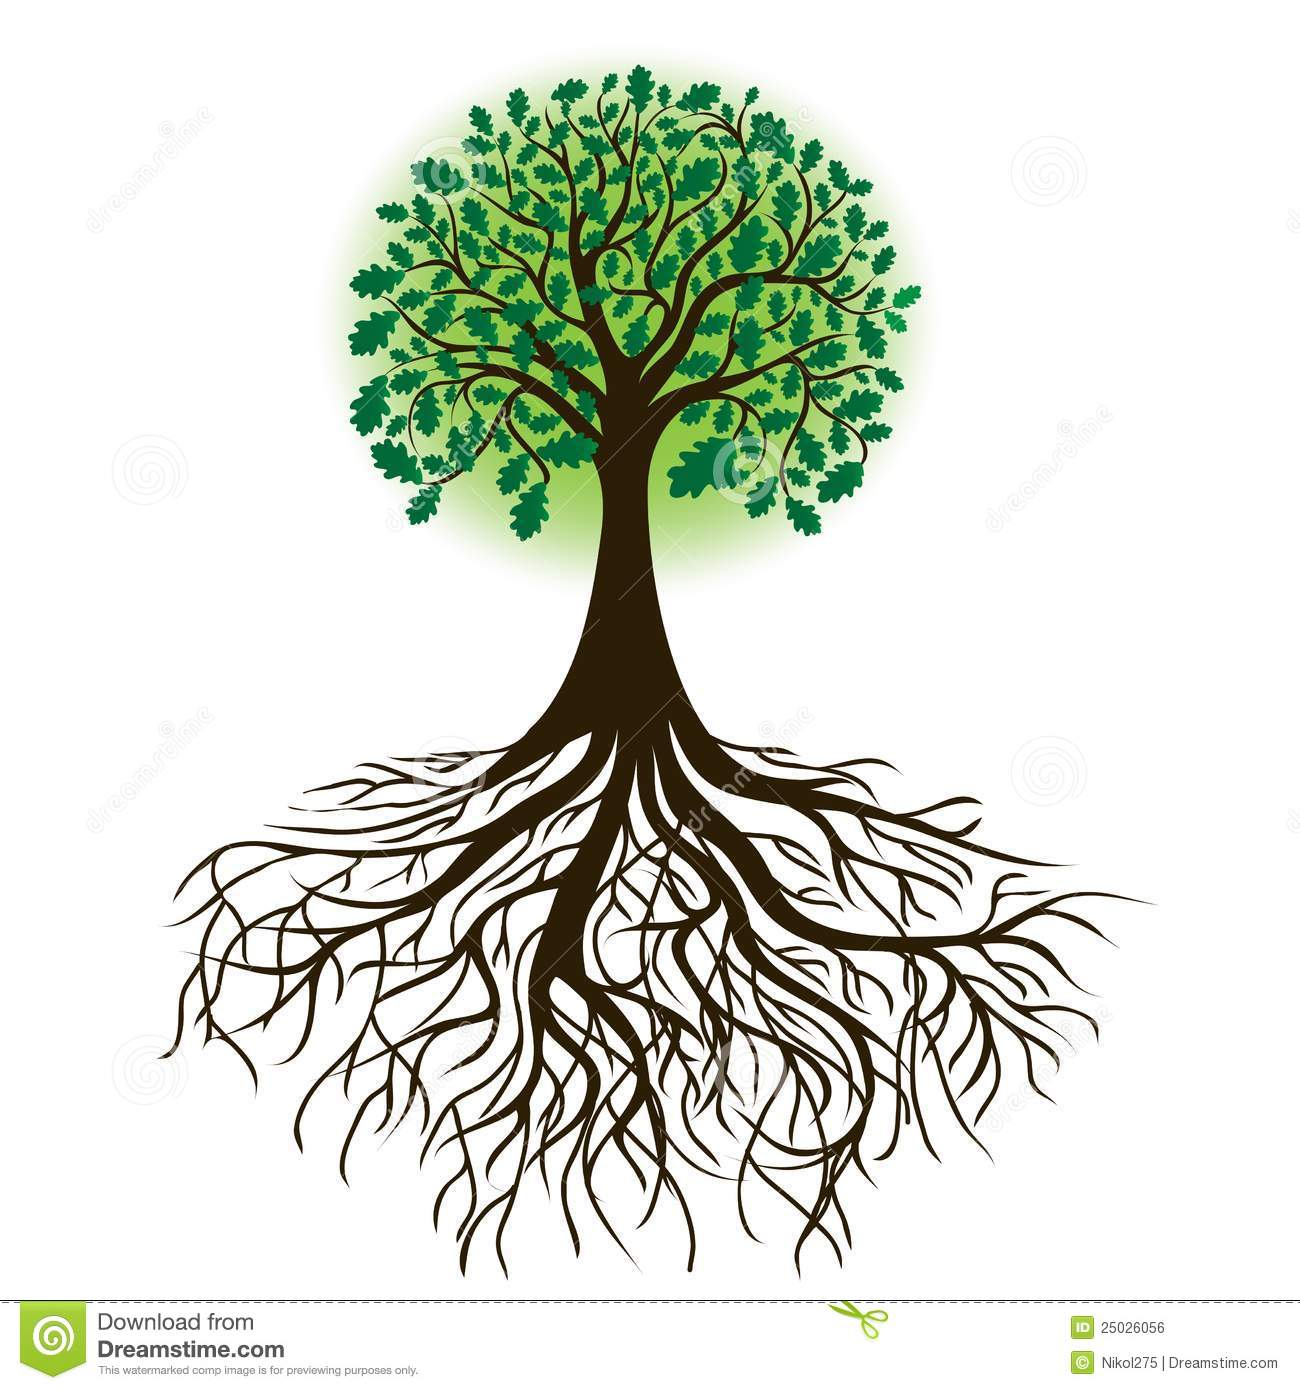 Healing clipart rooted tree Clip cute Bing ClipartFest deep